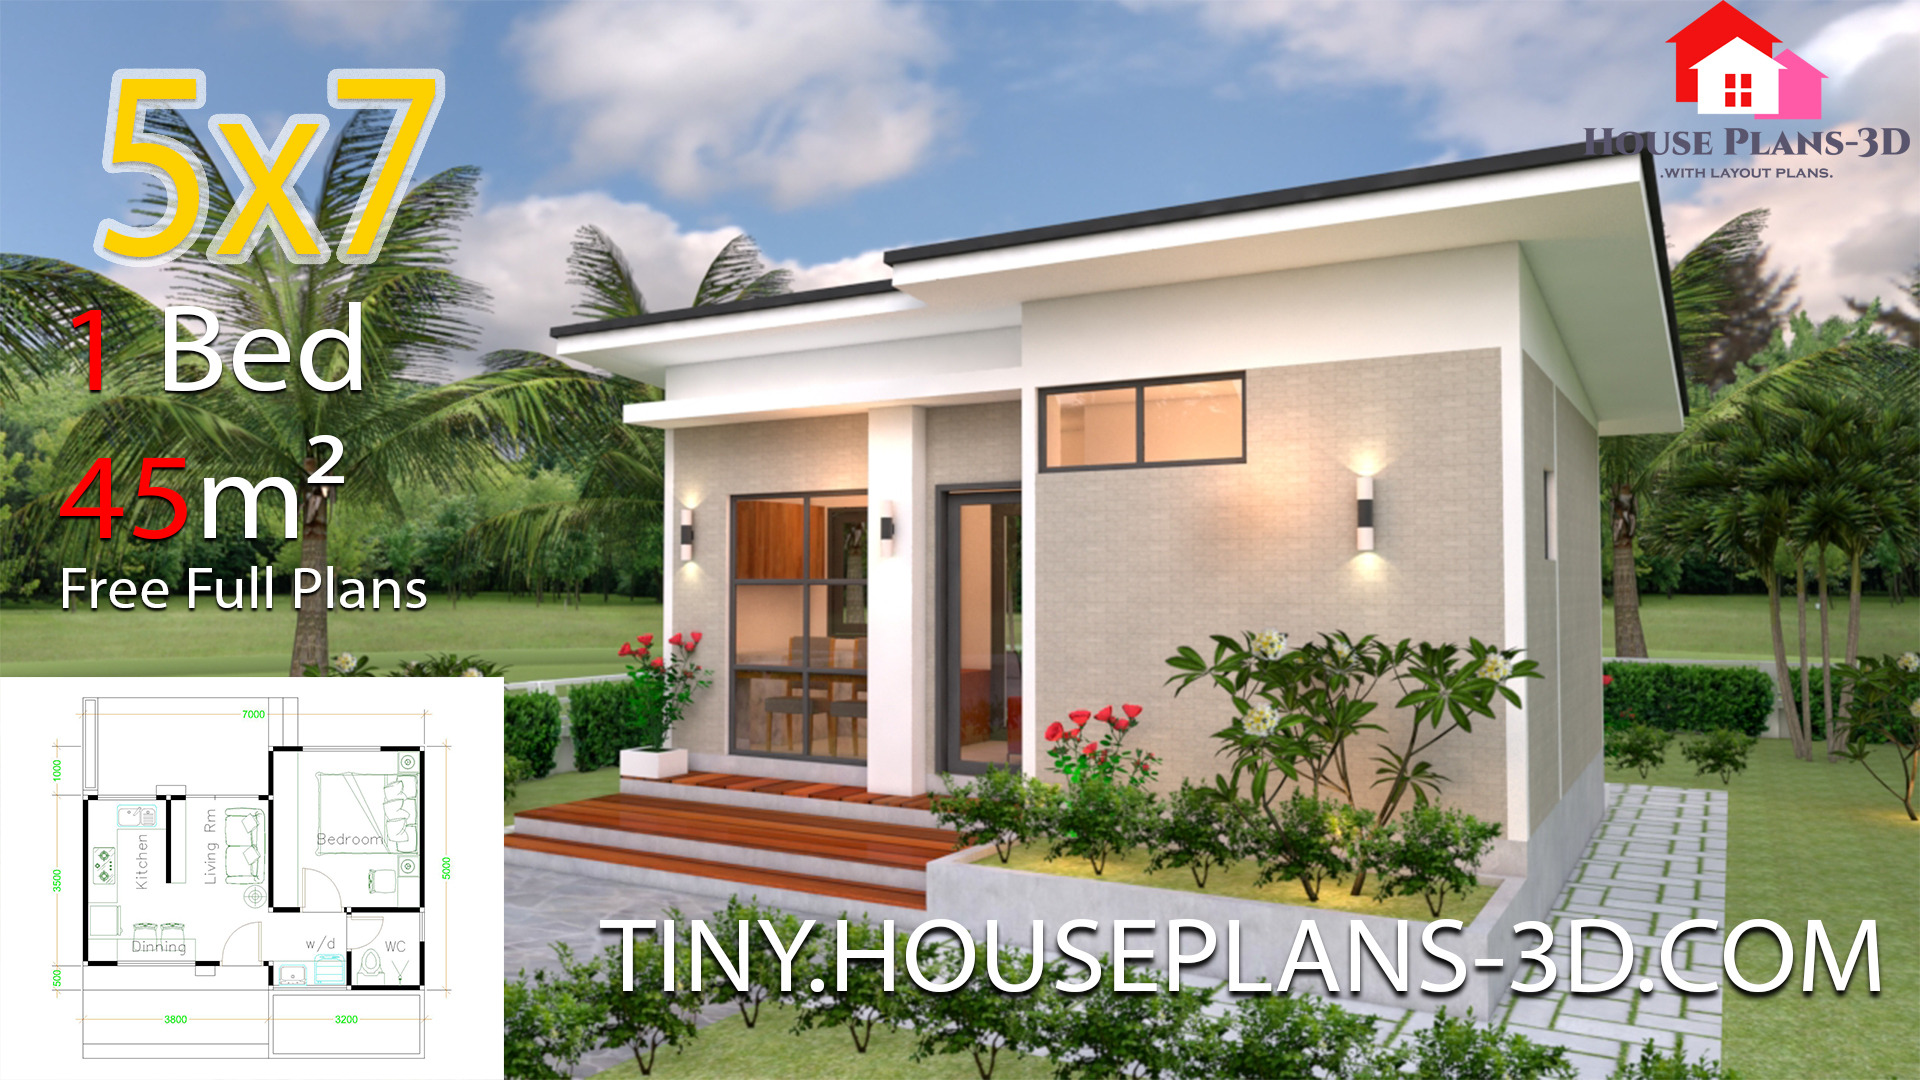 Small House Plans and Designs Inspirational Small House Design Images Susalorkersydnorhistoric